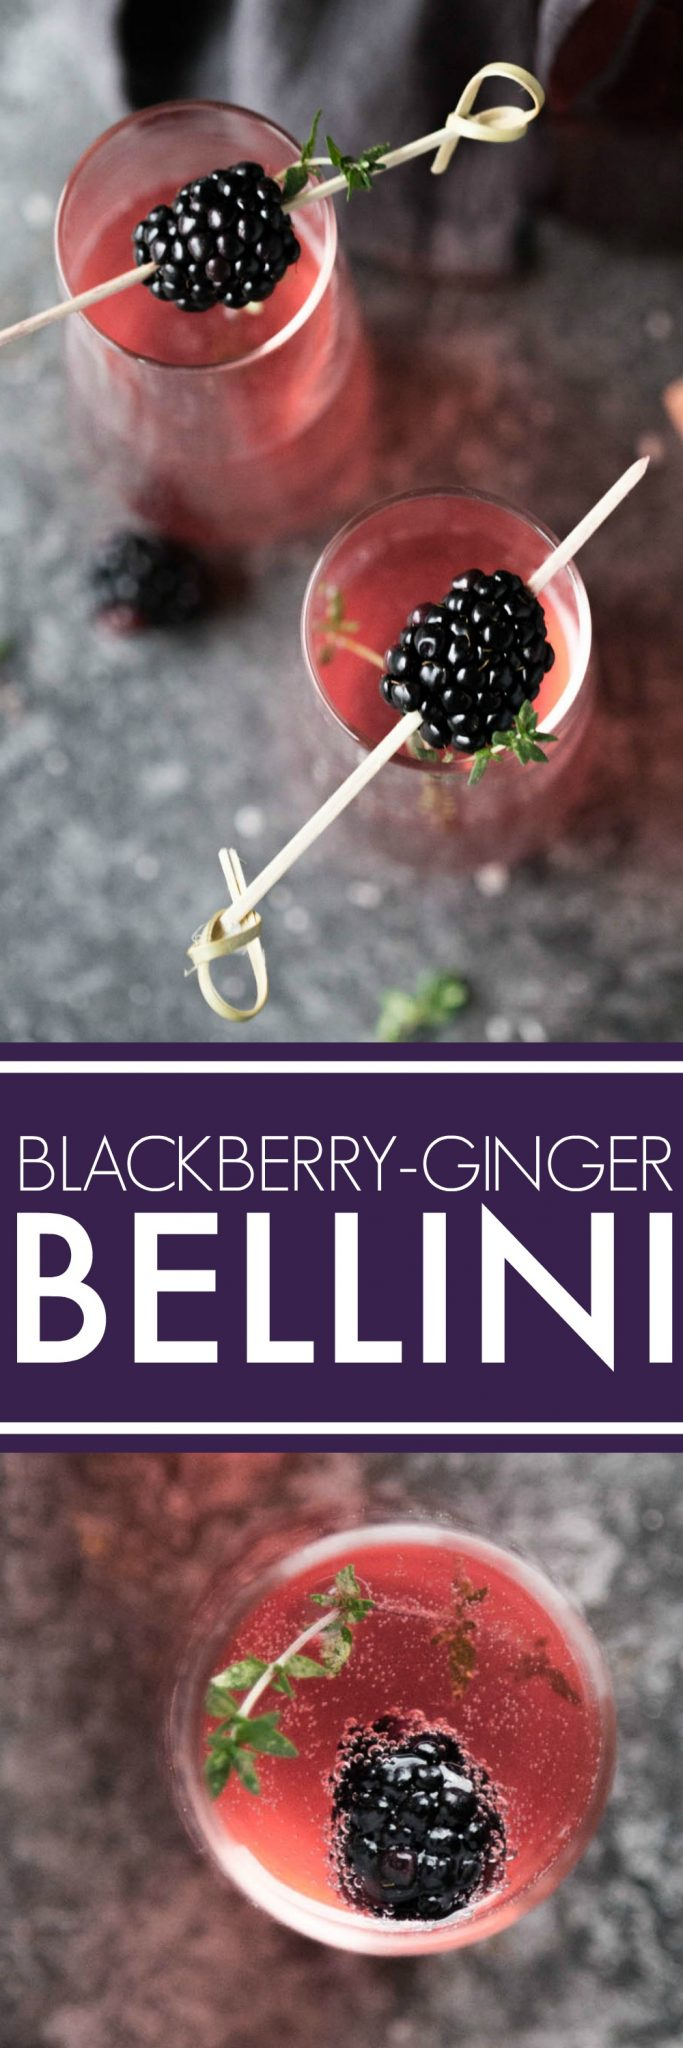 This Blackberry Ginger Bellini is a festive sparkling cocktail that's perfect for brunch or festive holiday parties. #bellini #brunchcocktail #festivecocktail #sparklingcocktail #cocktail #blackberrybellini #blackberrycocktail